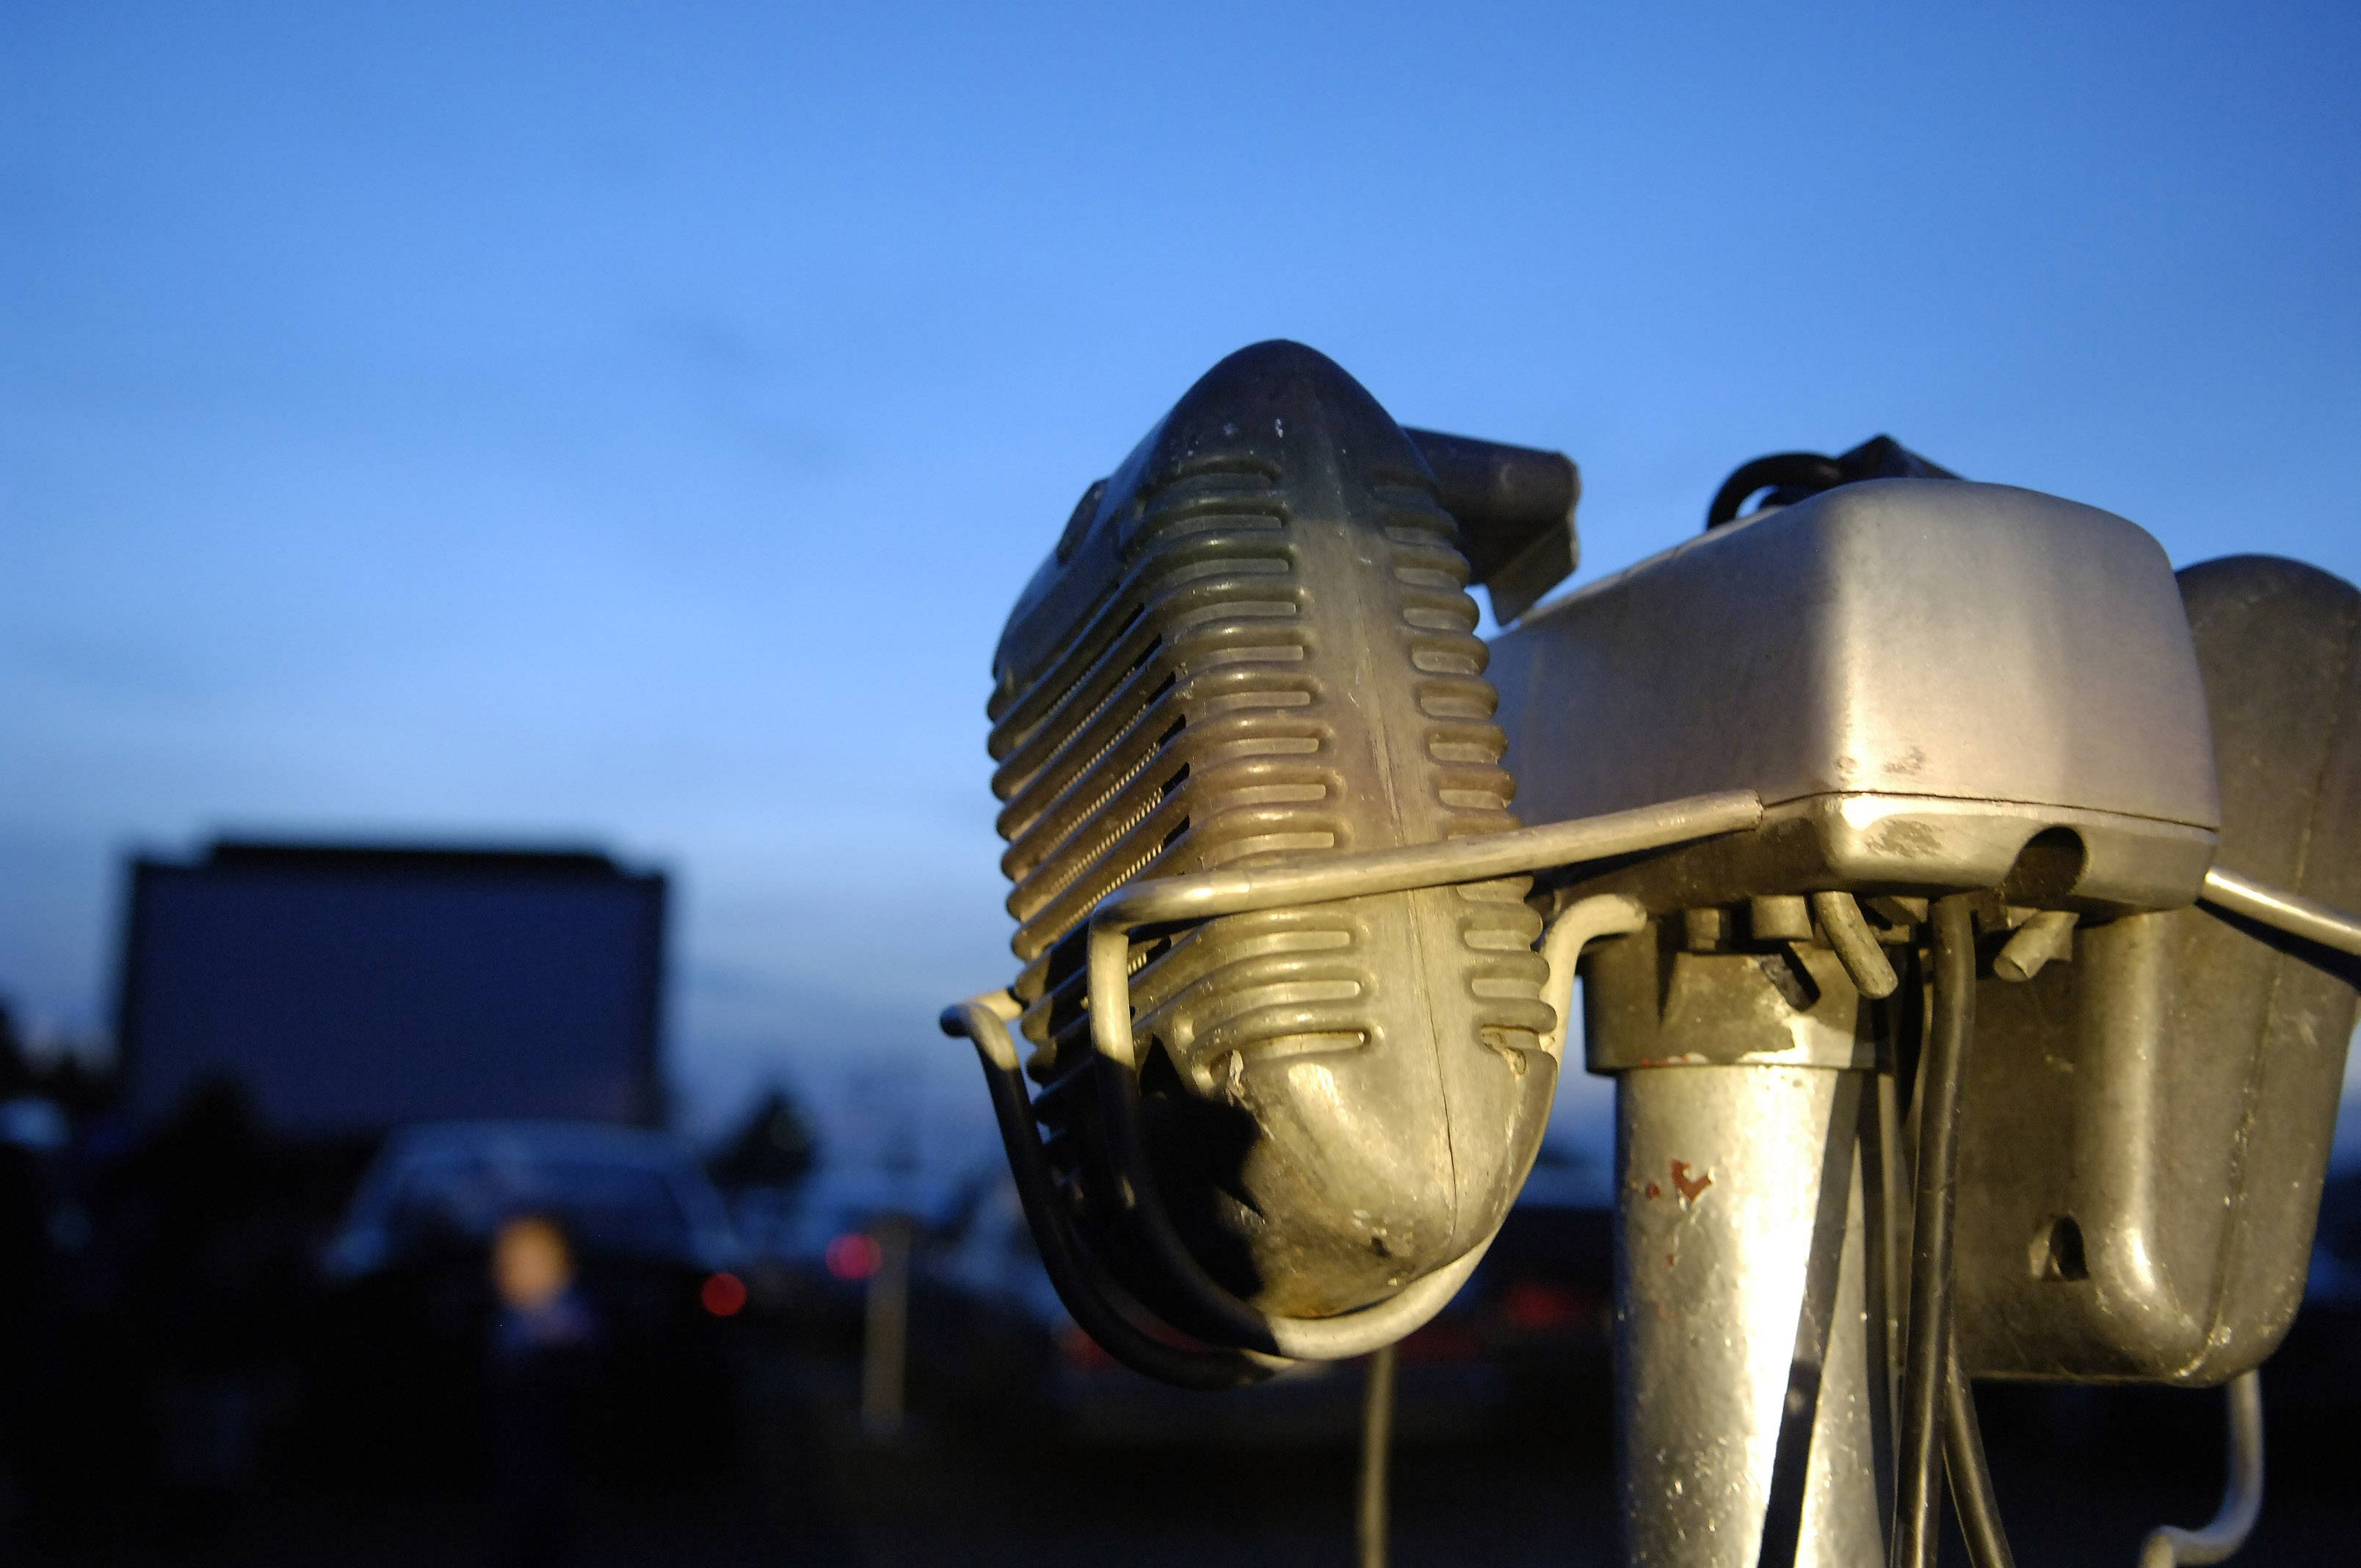 Speakers are available for cars to listen to the movie, or patrons can tune in their car radio to hear the movie at the McHenry Drive-In.